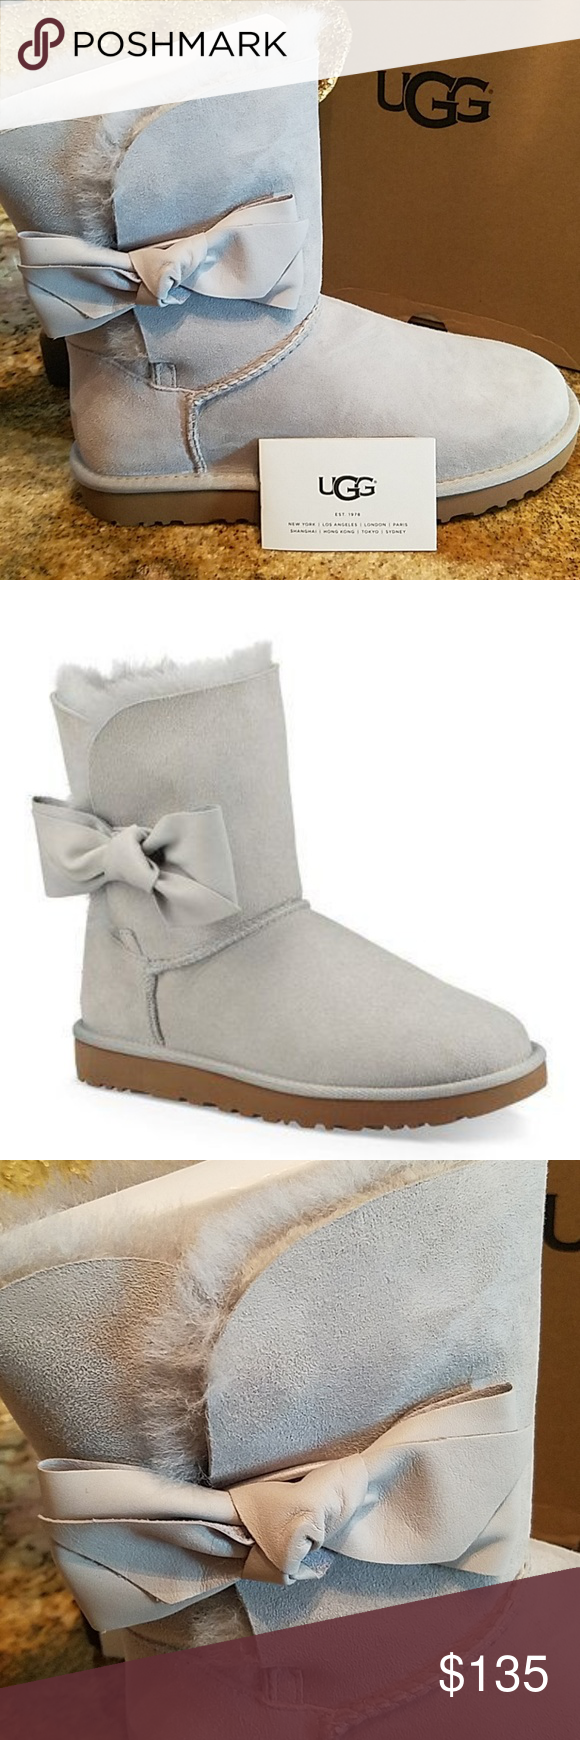 98b8ee4abe9 UGG Daelynn Grey Suede Boots NEW! Adorable, authentic Daelynn Ugg ...